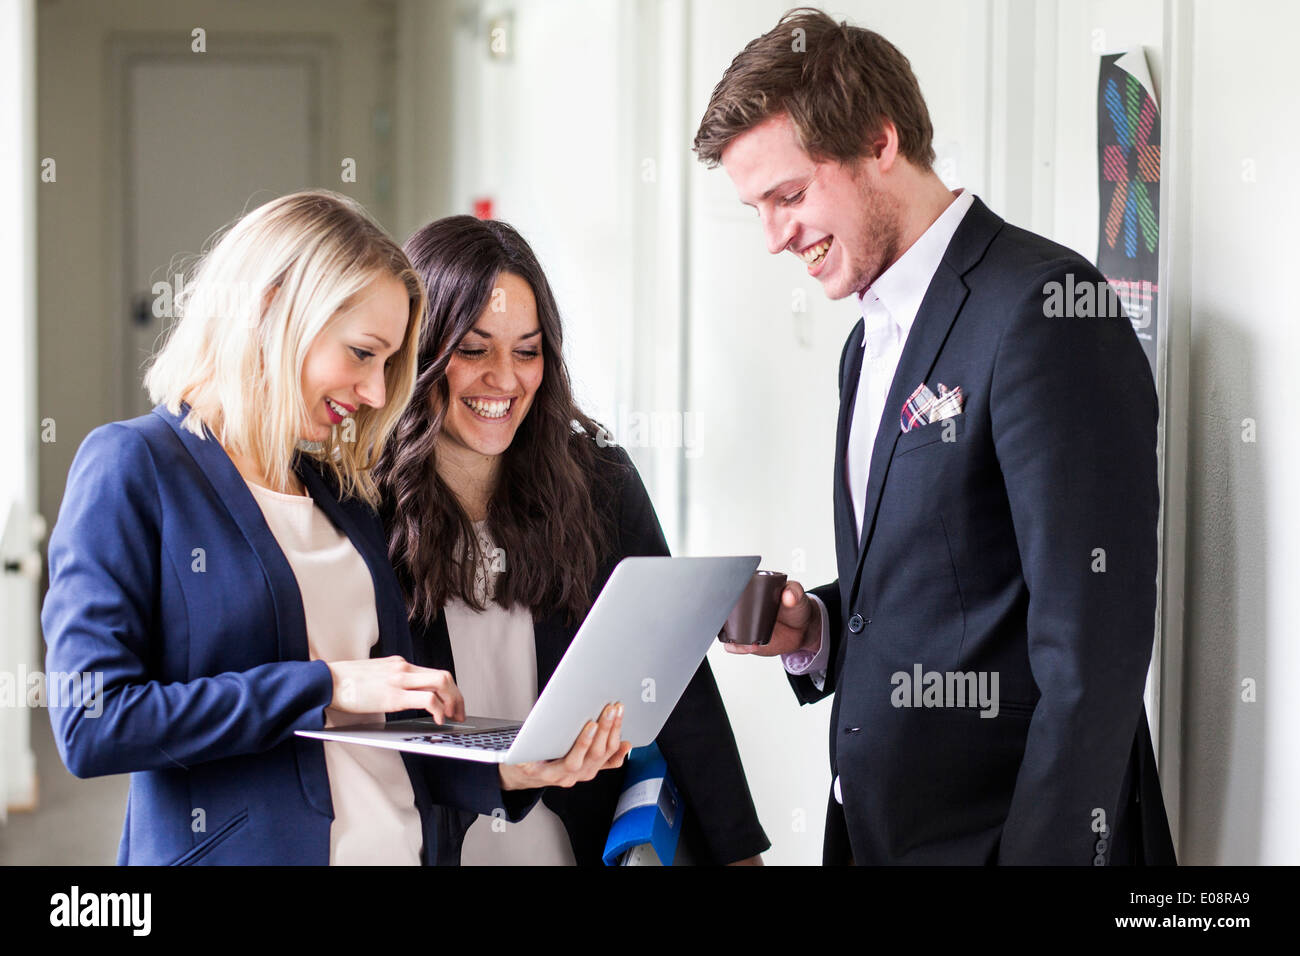 Business people using laptop in office corridor - Stock Image